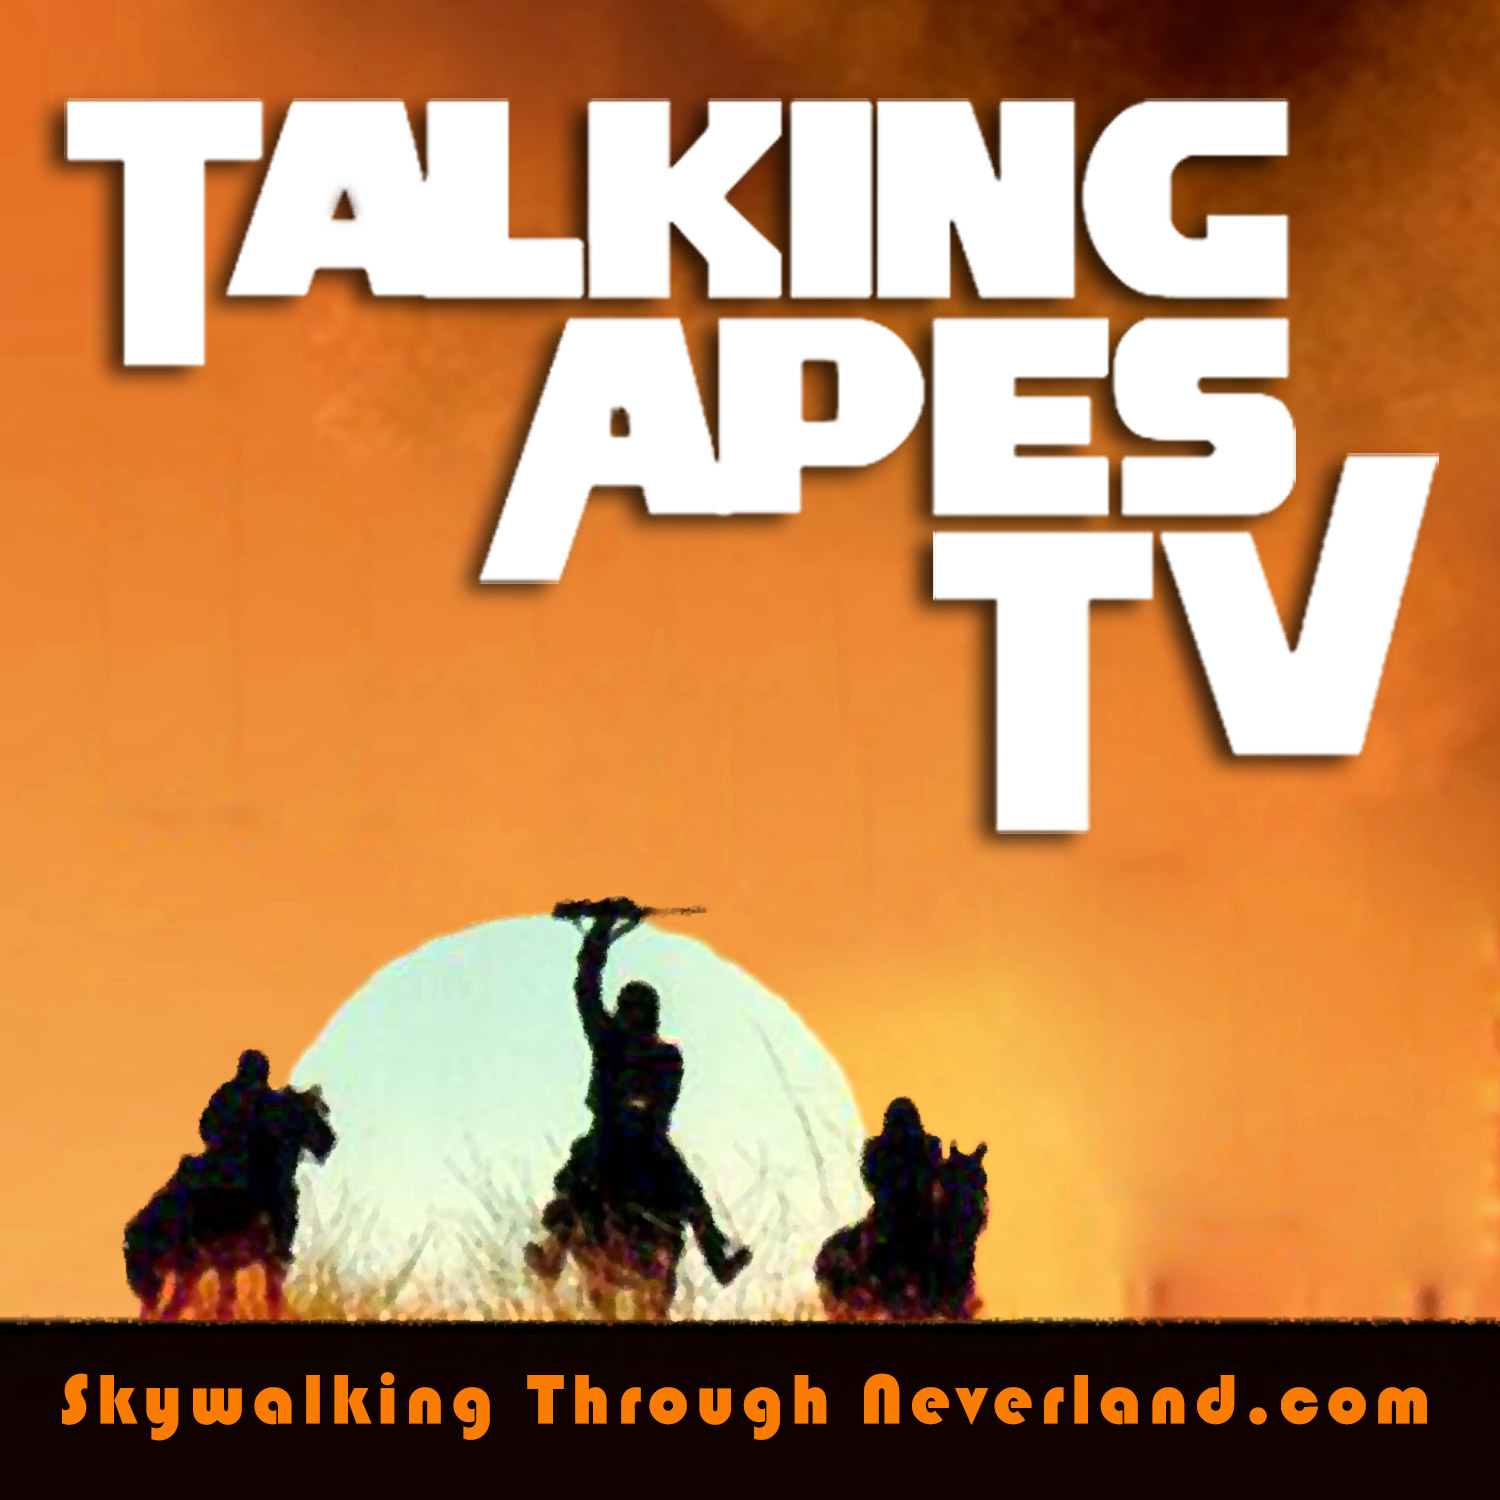 Talking Apes TV: A Planet of the Apes Podcast show art